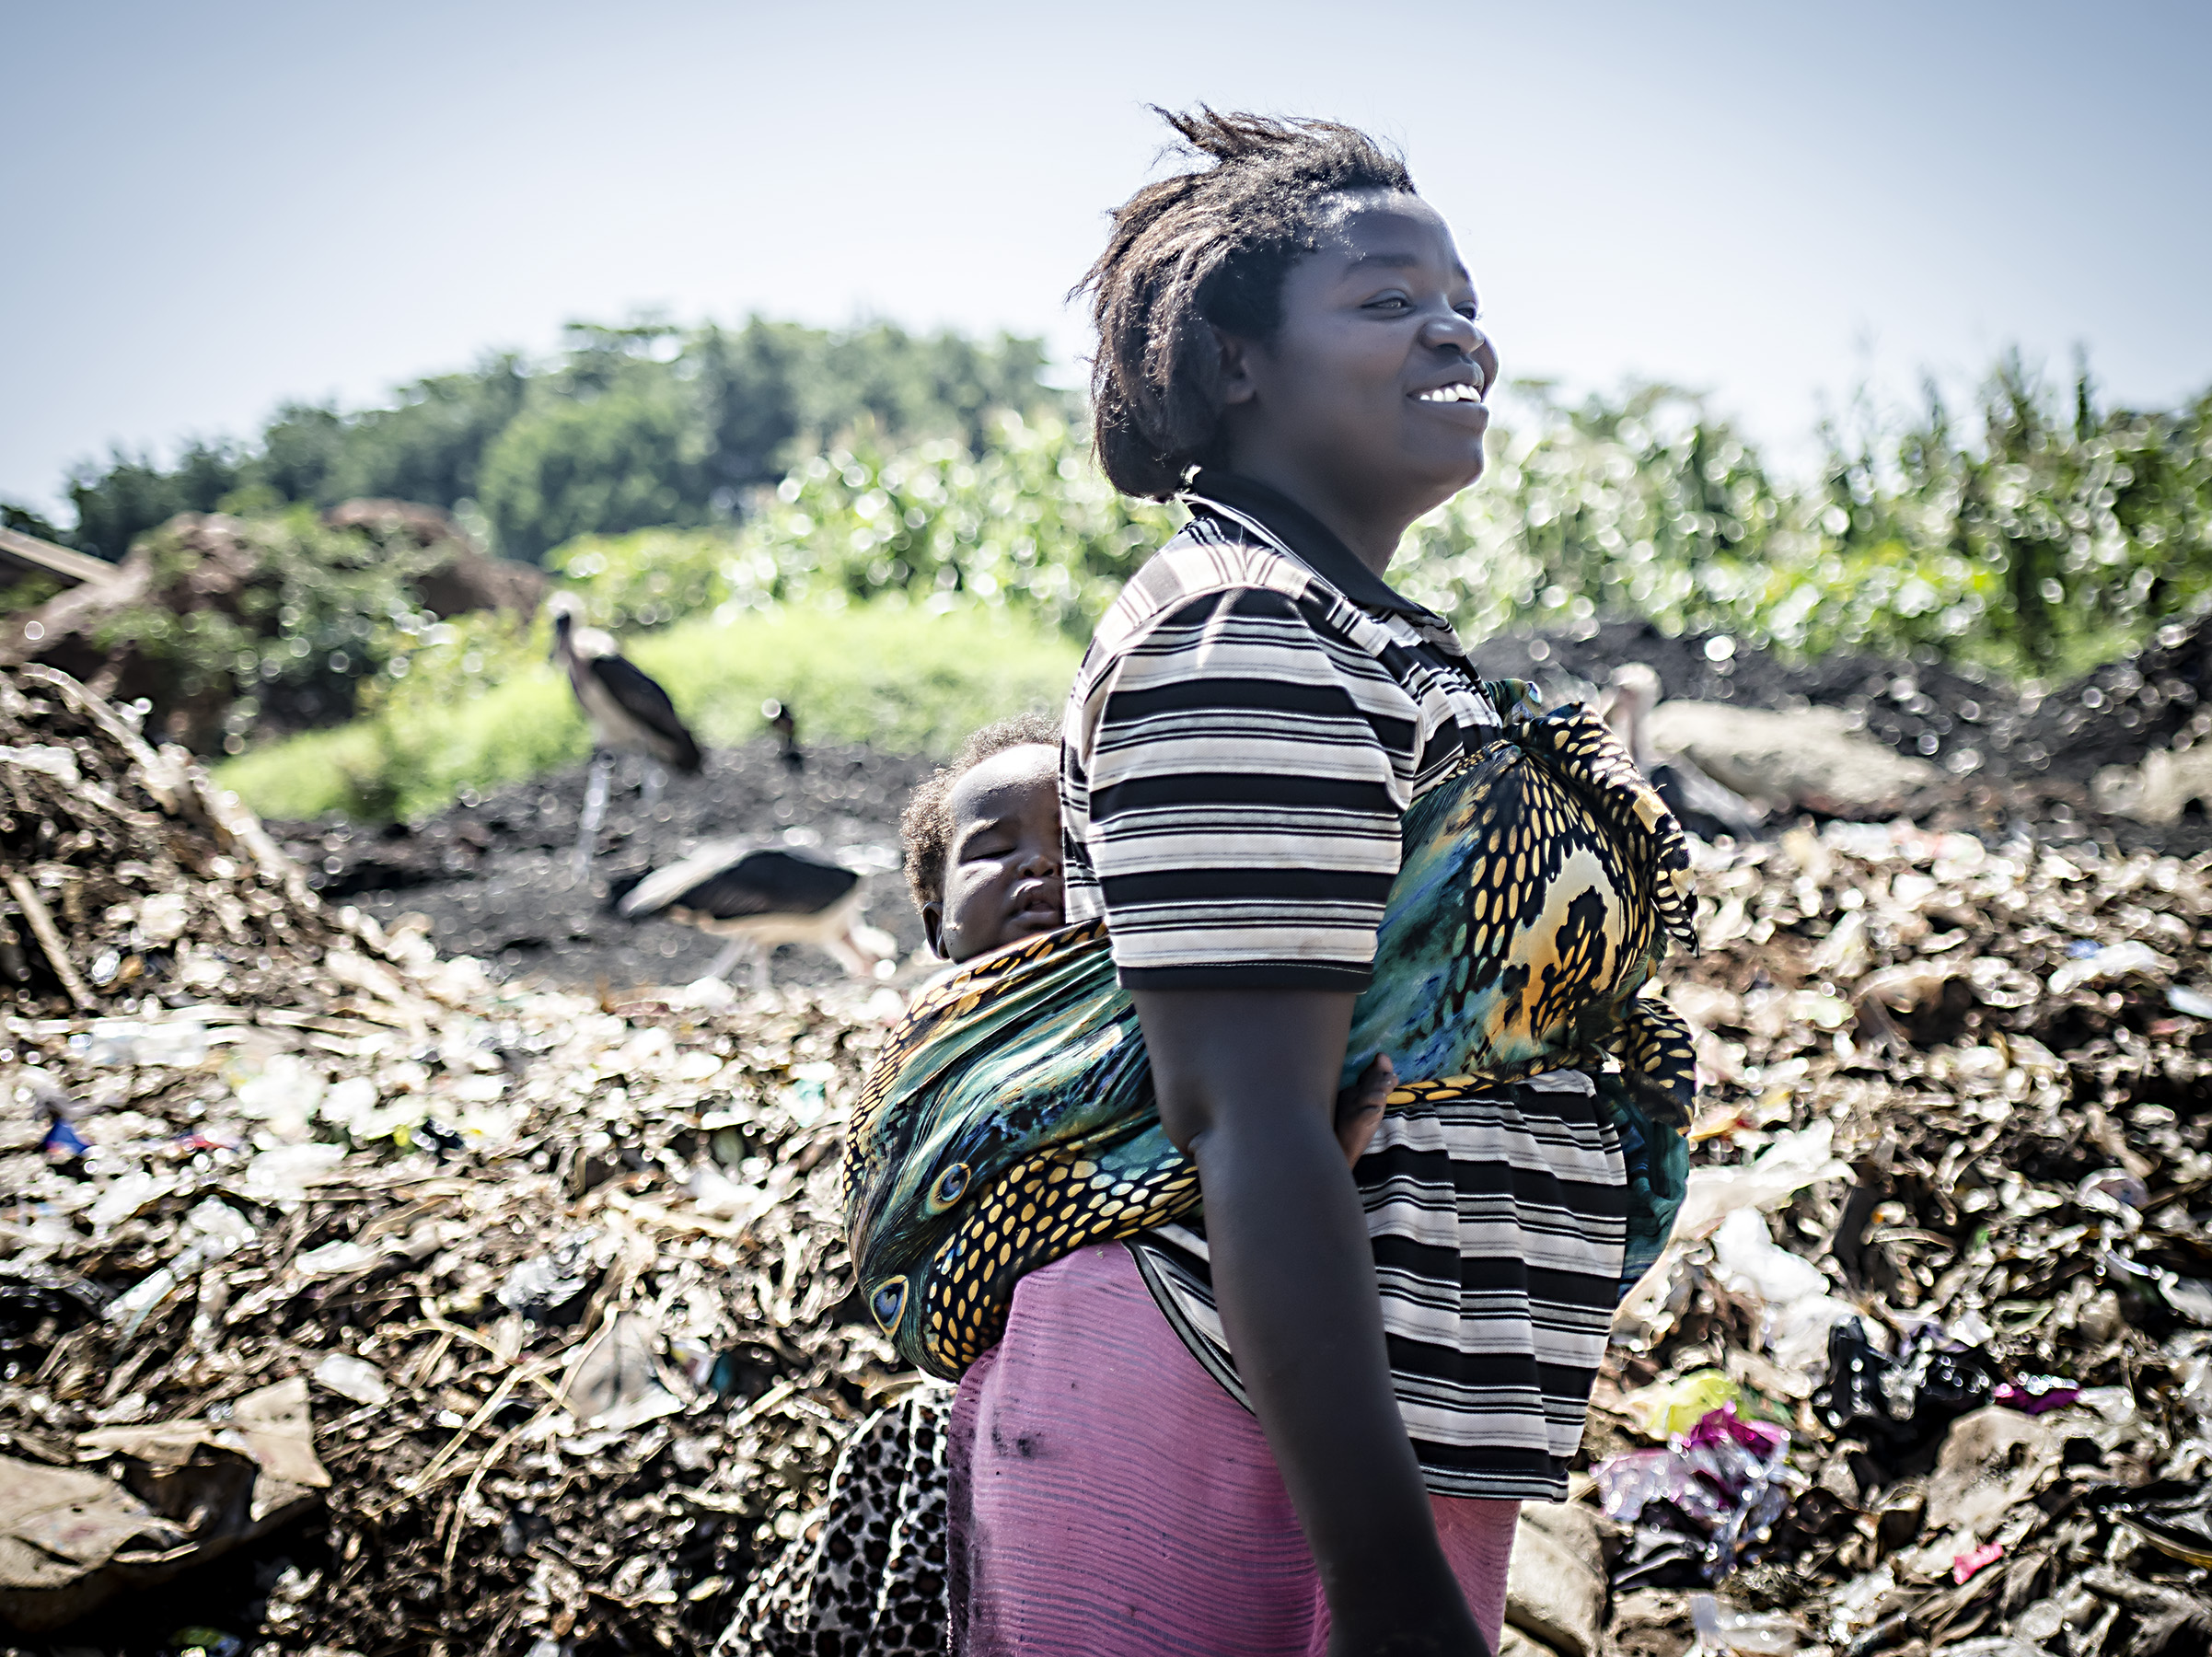 Woman and child working in the Jinja dumpsite.